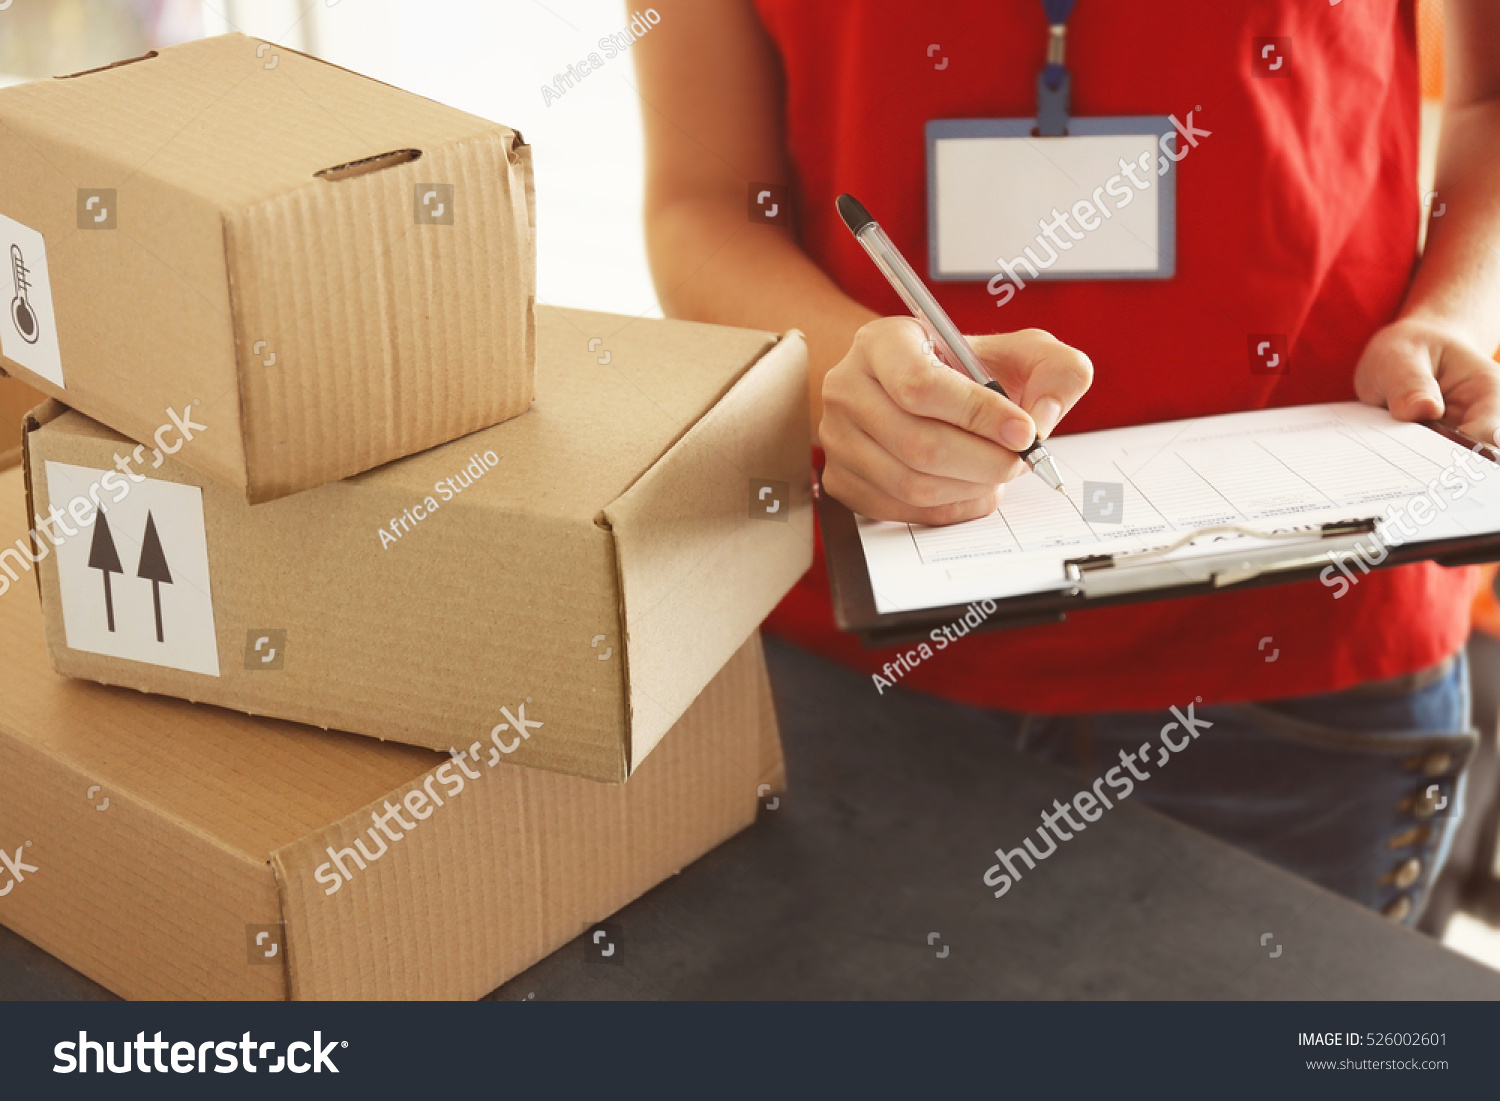 Courier Making Notes In Delivery Receipt At Table Stock Photo ...